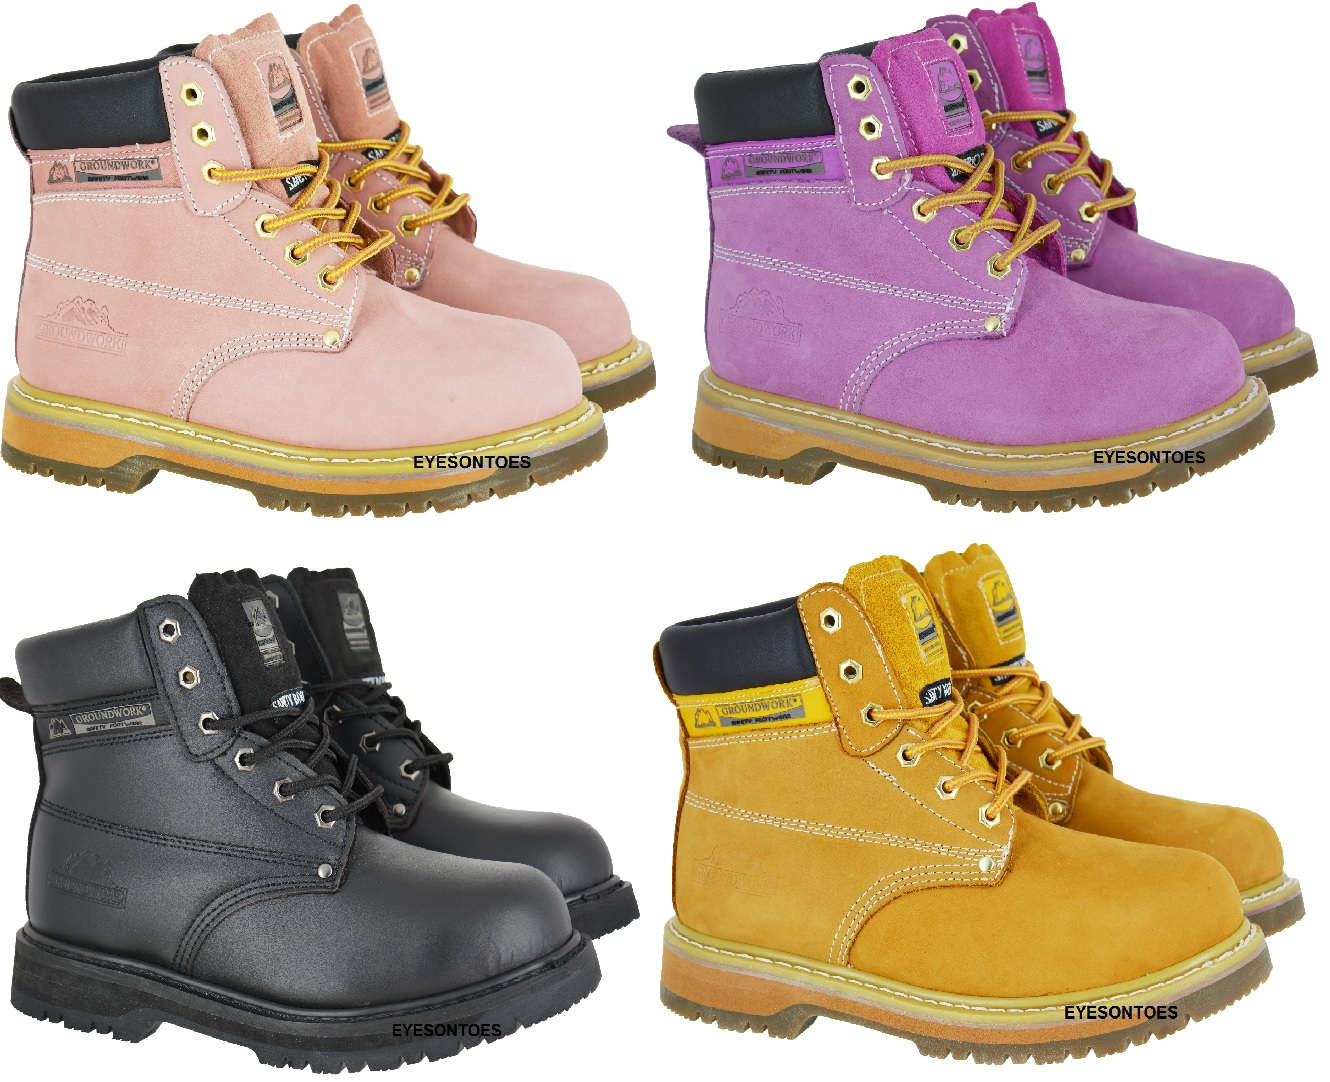 c284210ffea Details about LADIES PINK GROUNDWORK SAFETY STEEL TOE CAP LEATHER WORK  HIKING BOOTS SIZE 3-8